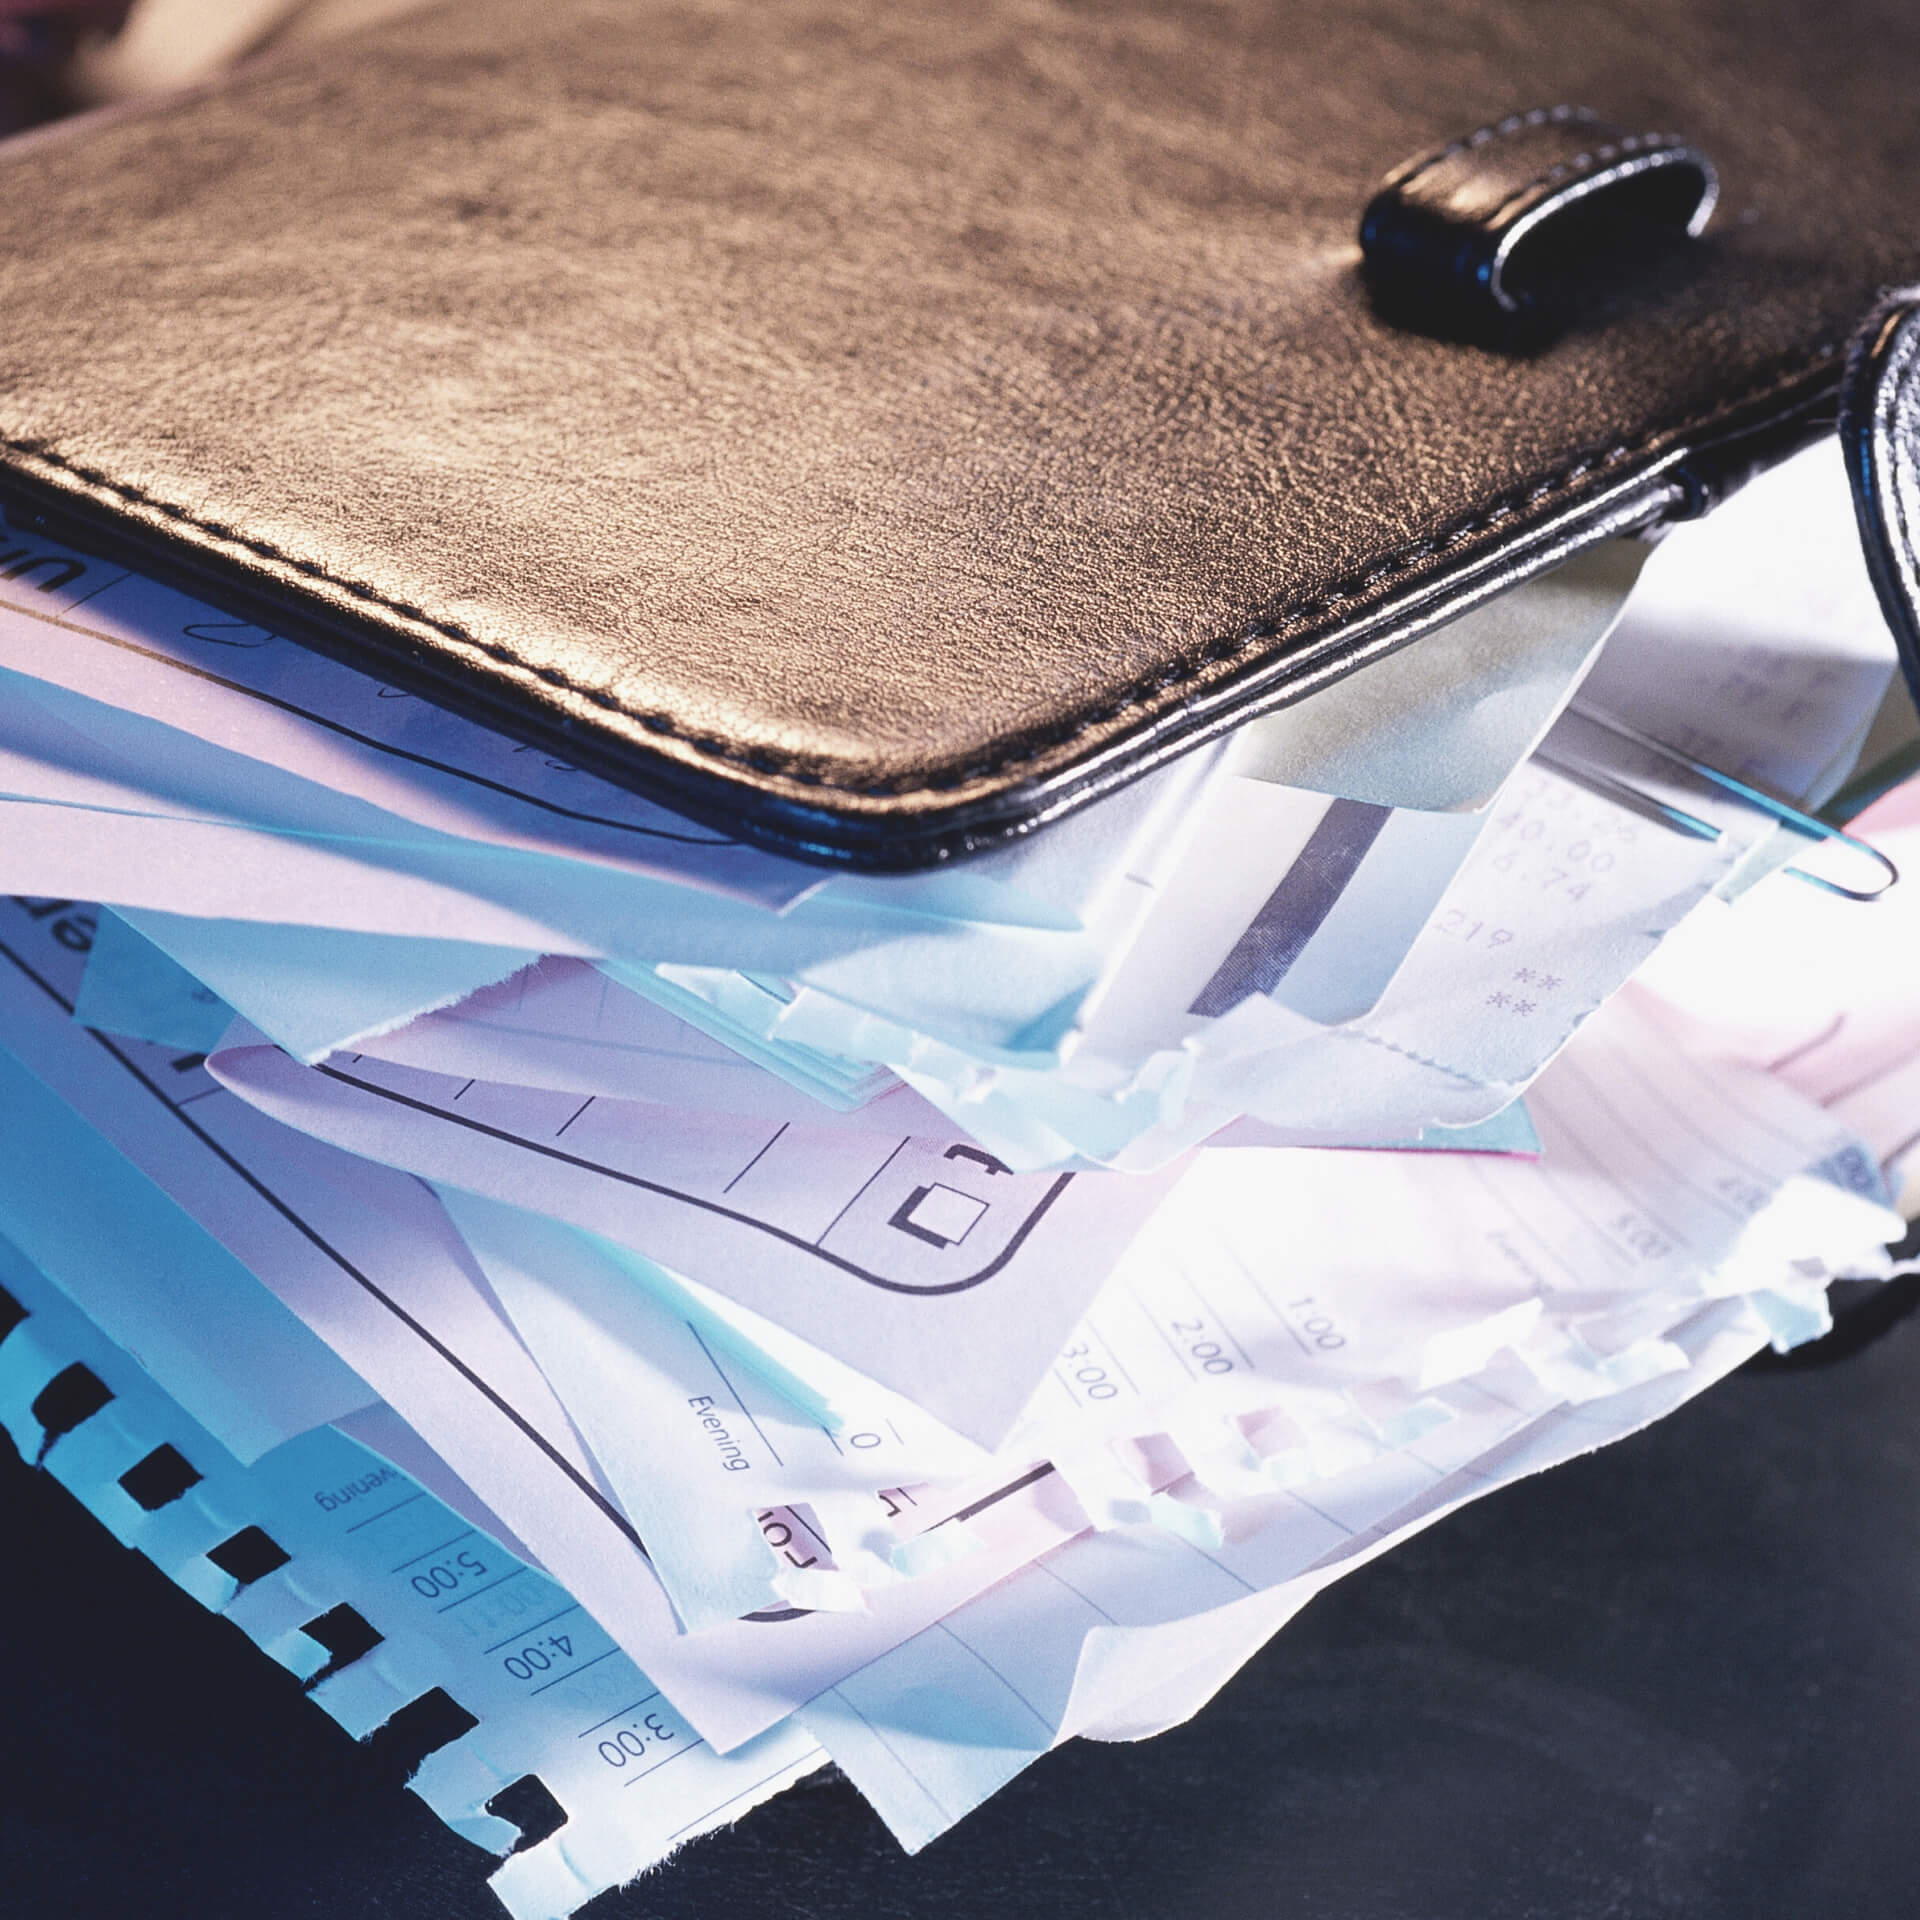 Organize Your Blog: A planner full of unorganized loos paper.